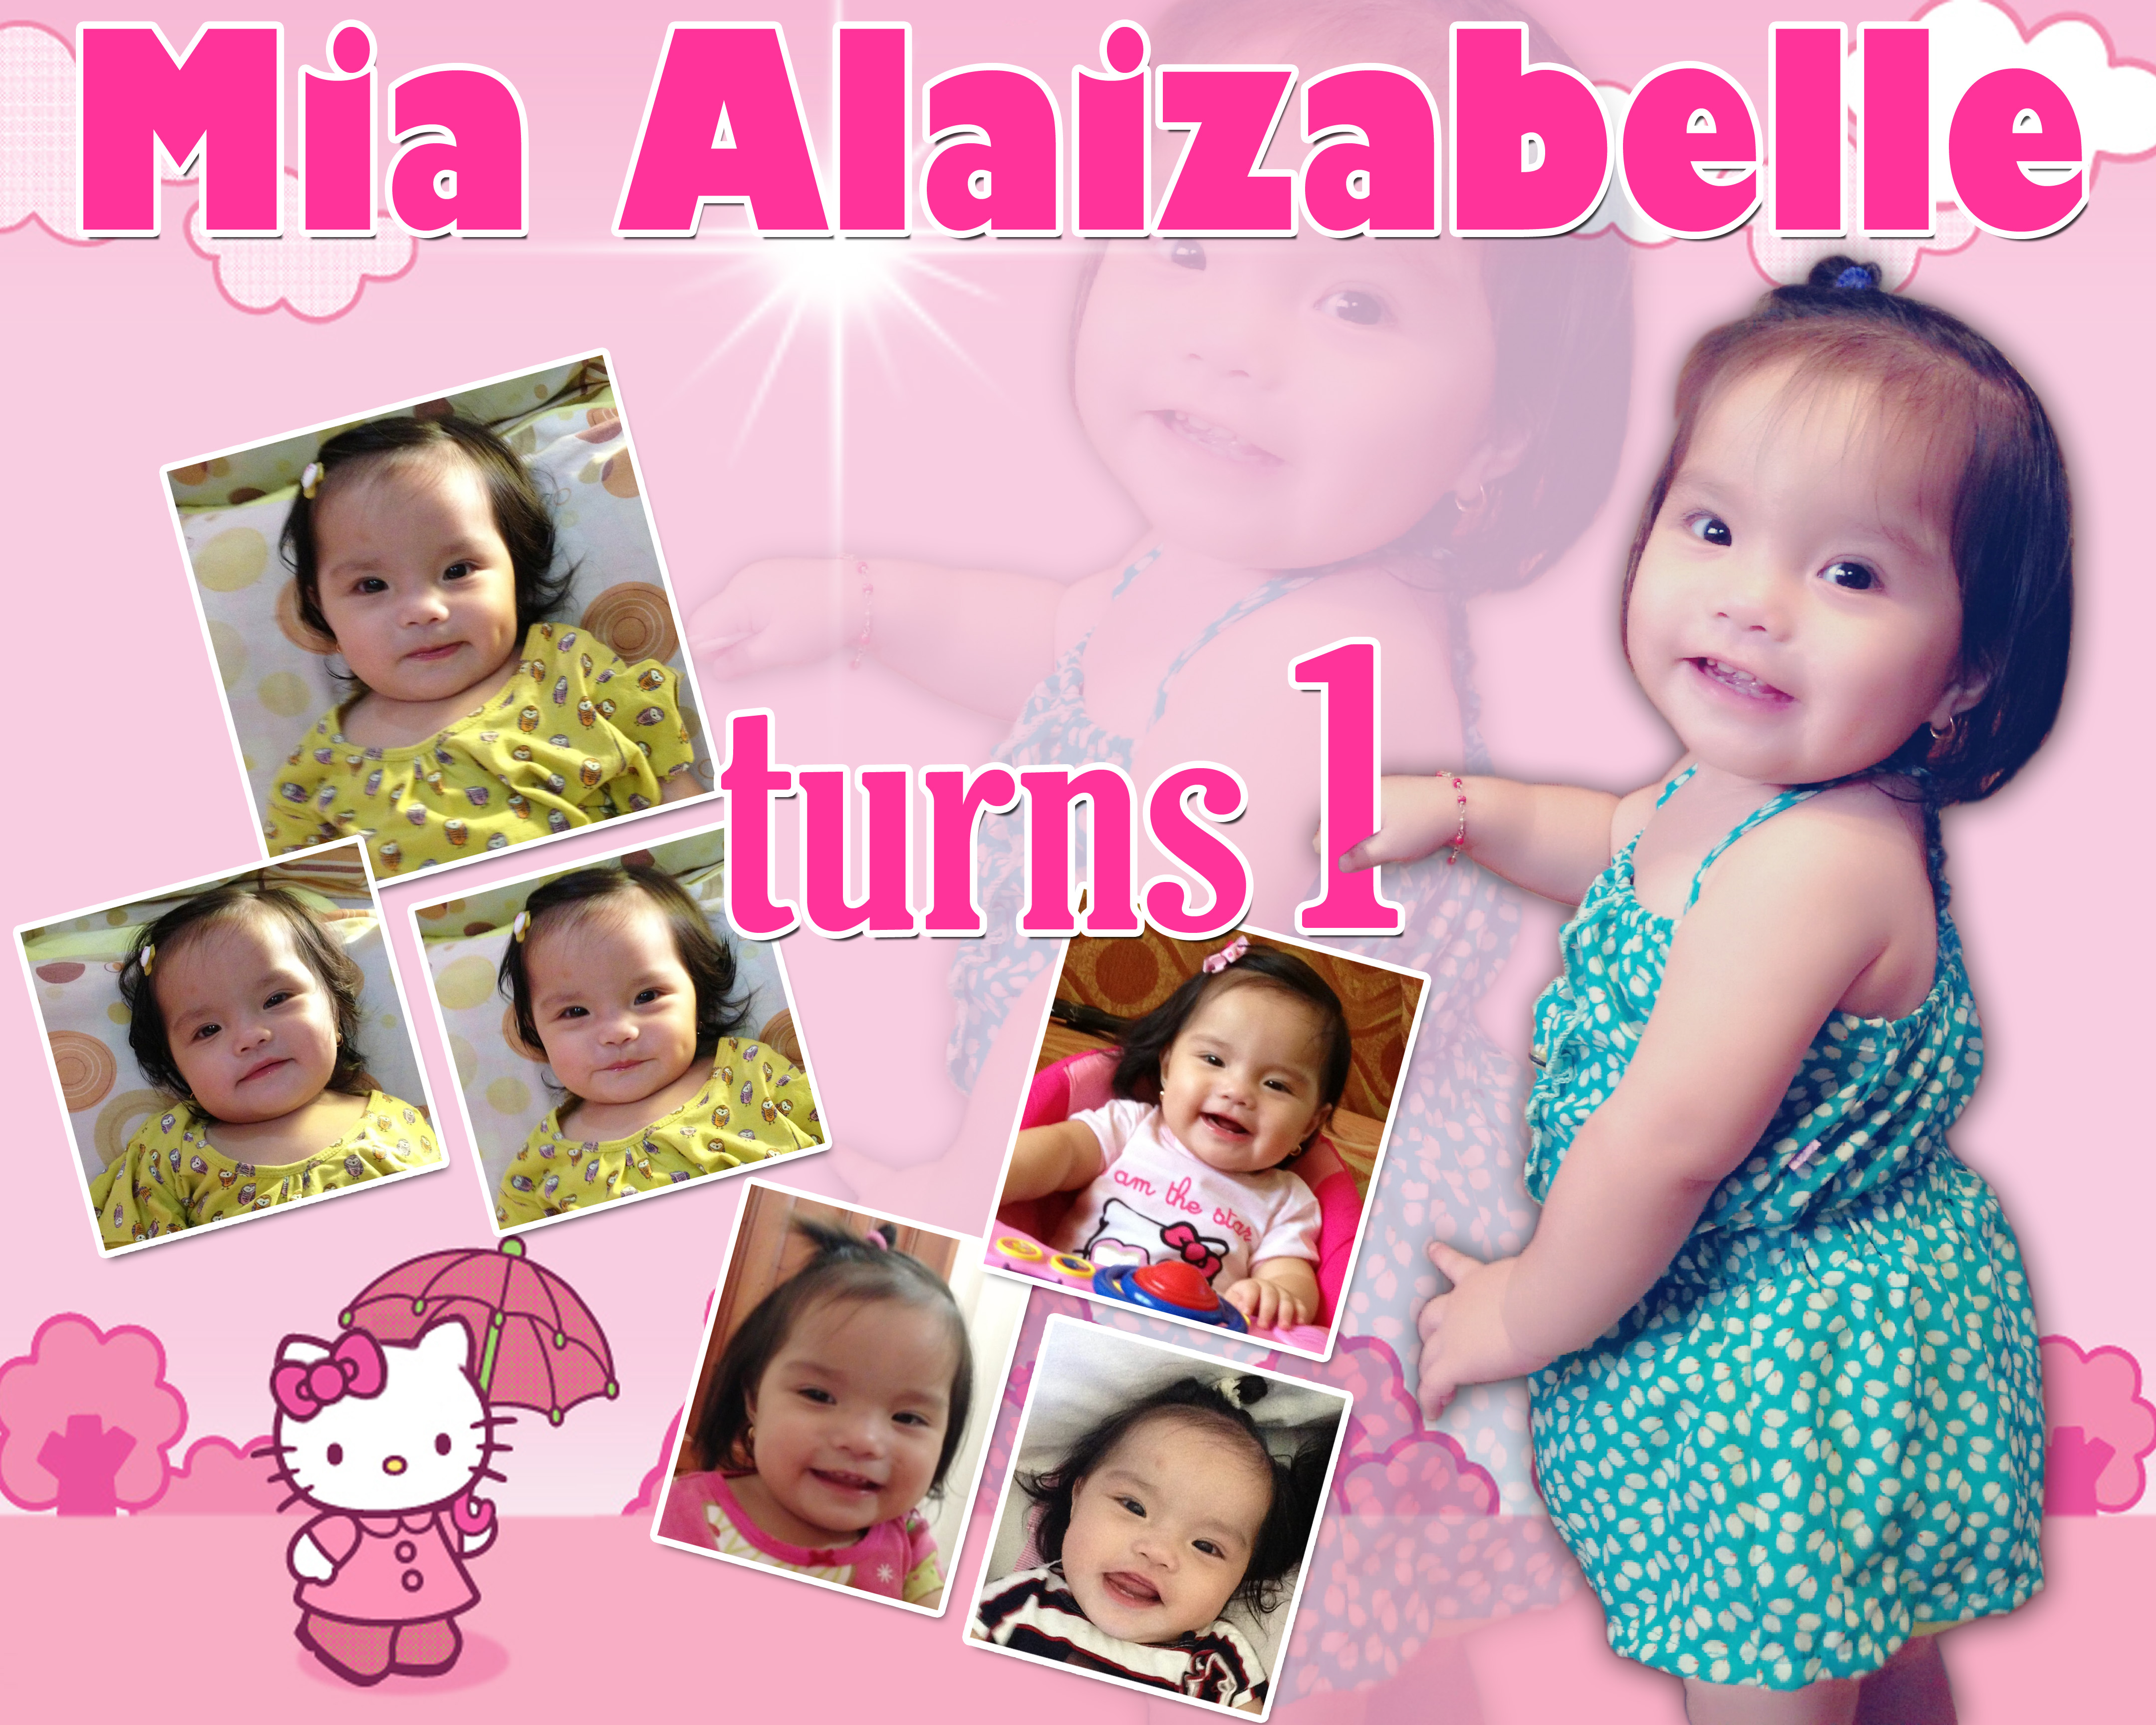 Mia Alaizabelle S Turns 1 Hello Kitty Theme Cebu Balloons And